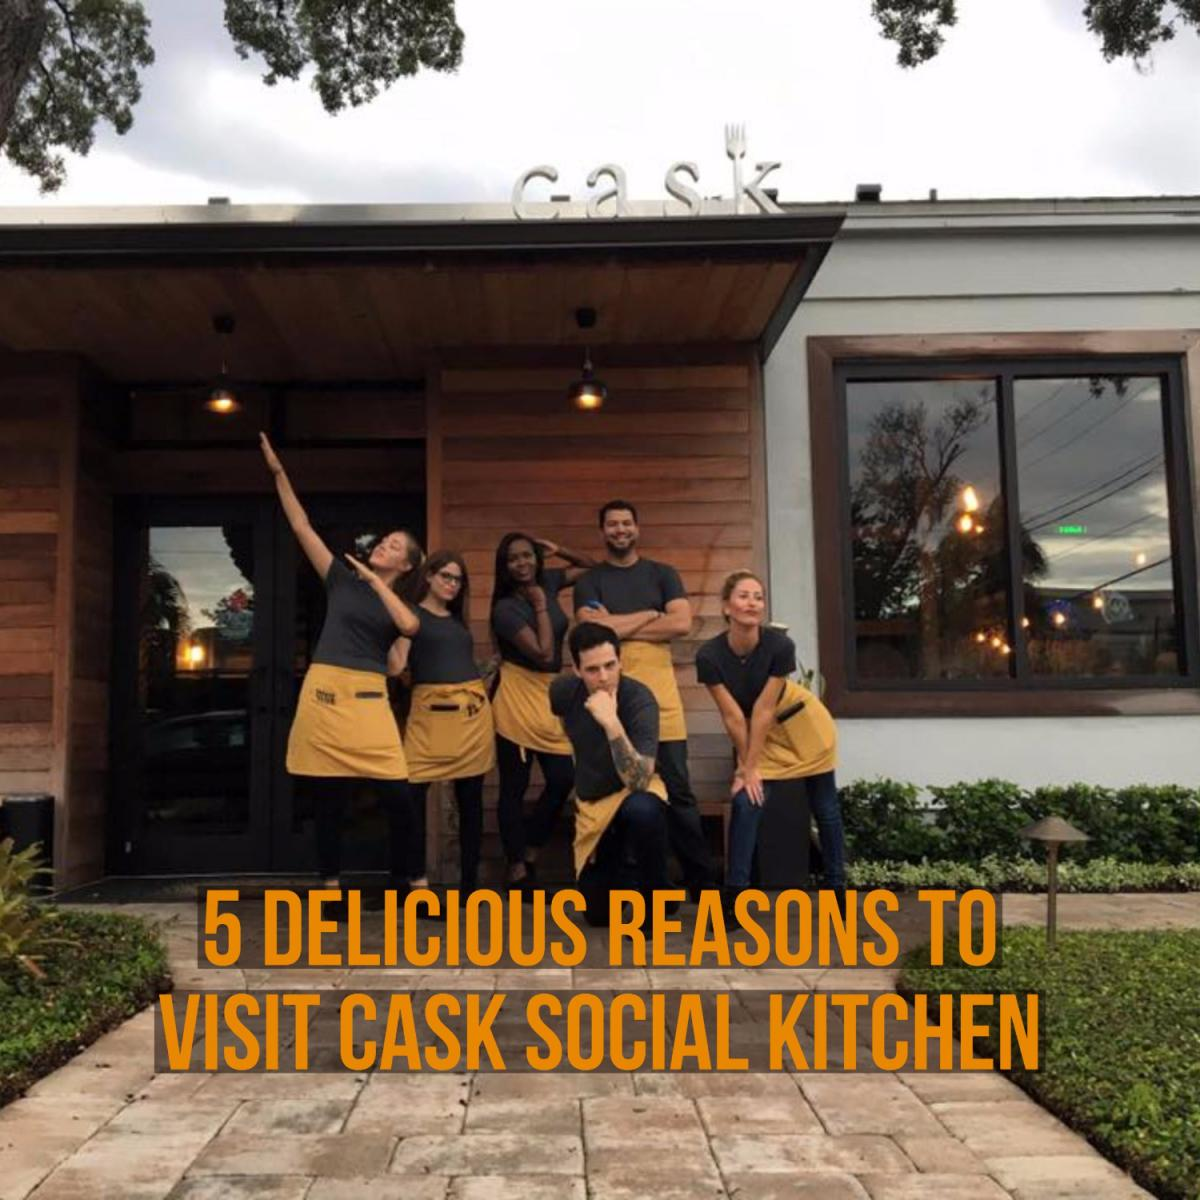 5 Delicious Reasons to Visit Cask Social Kitchen This Fall